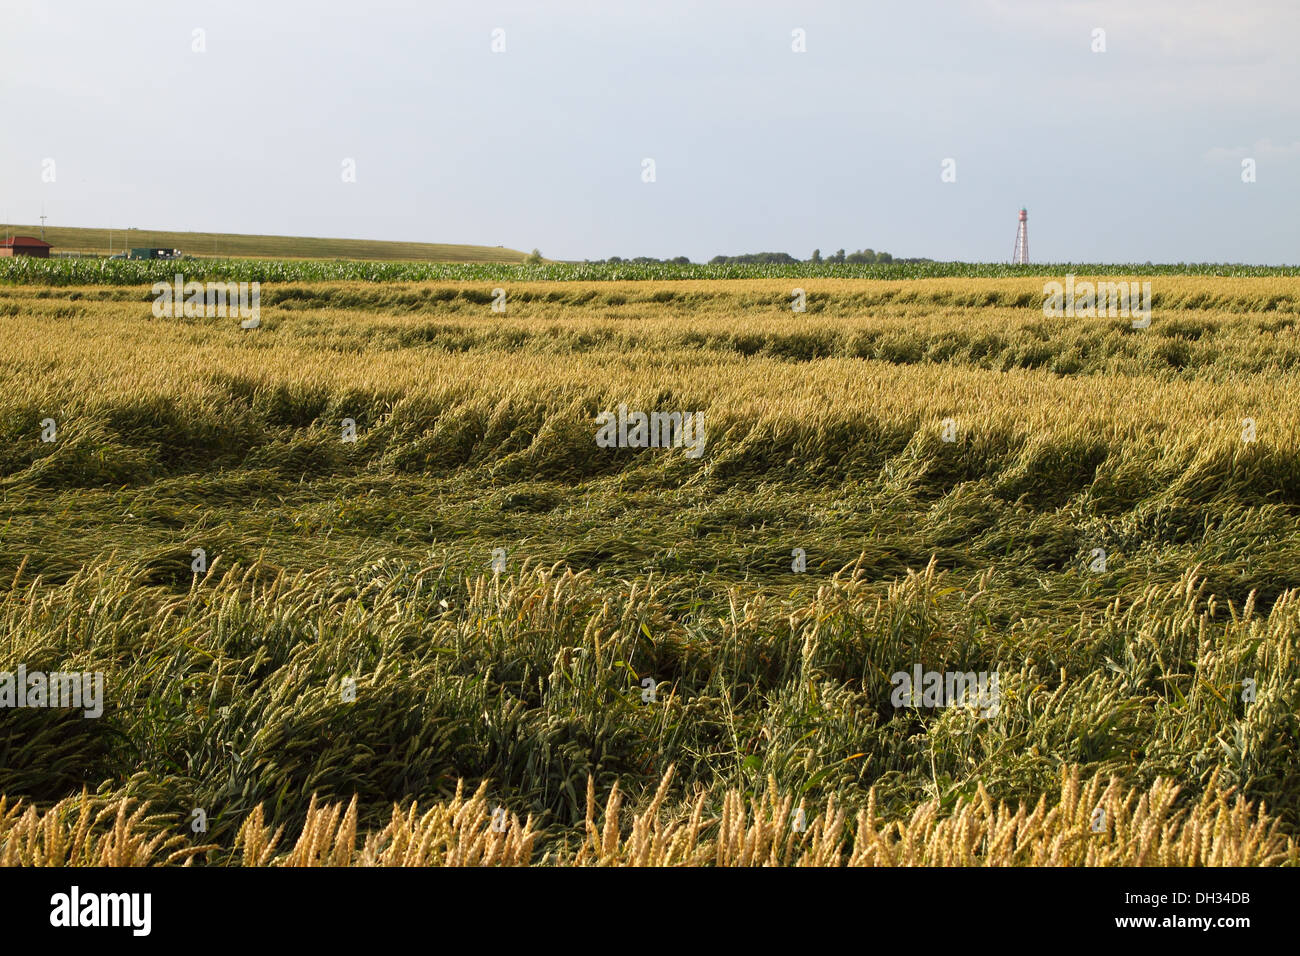 Wheat field after heavy rain - Stock Image